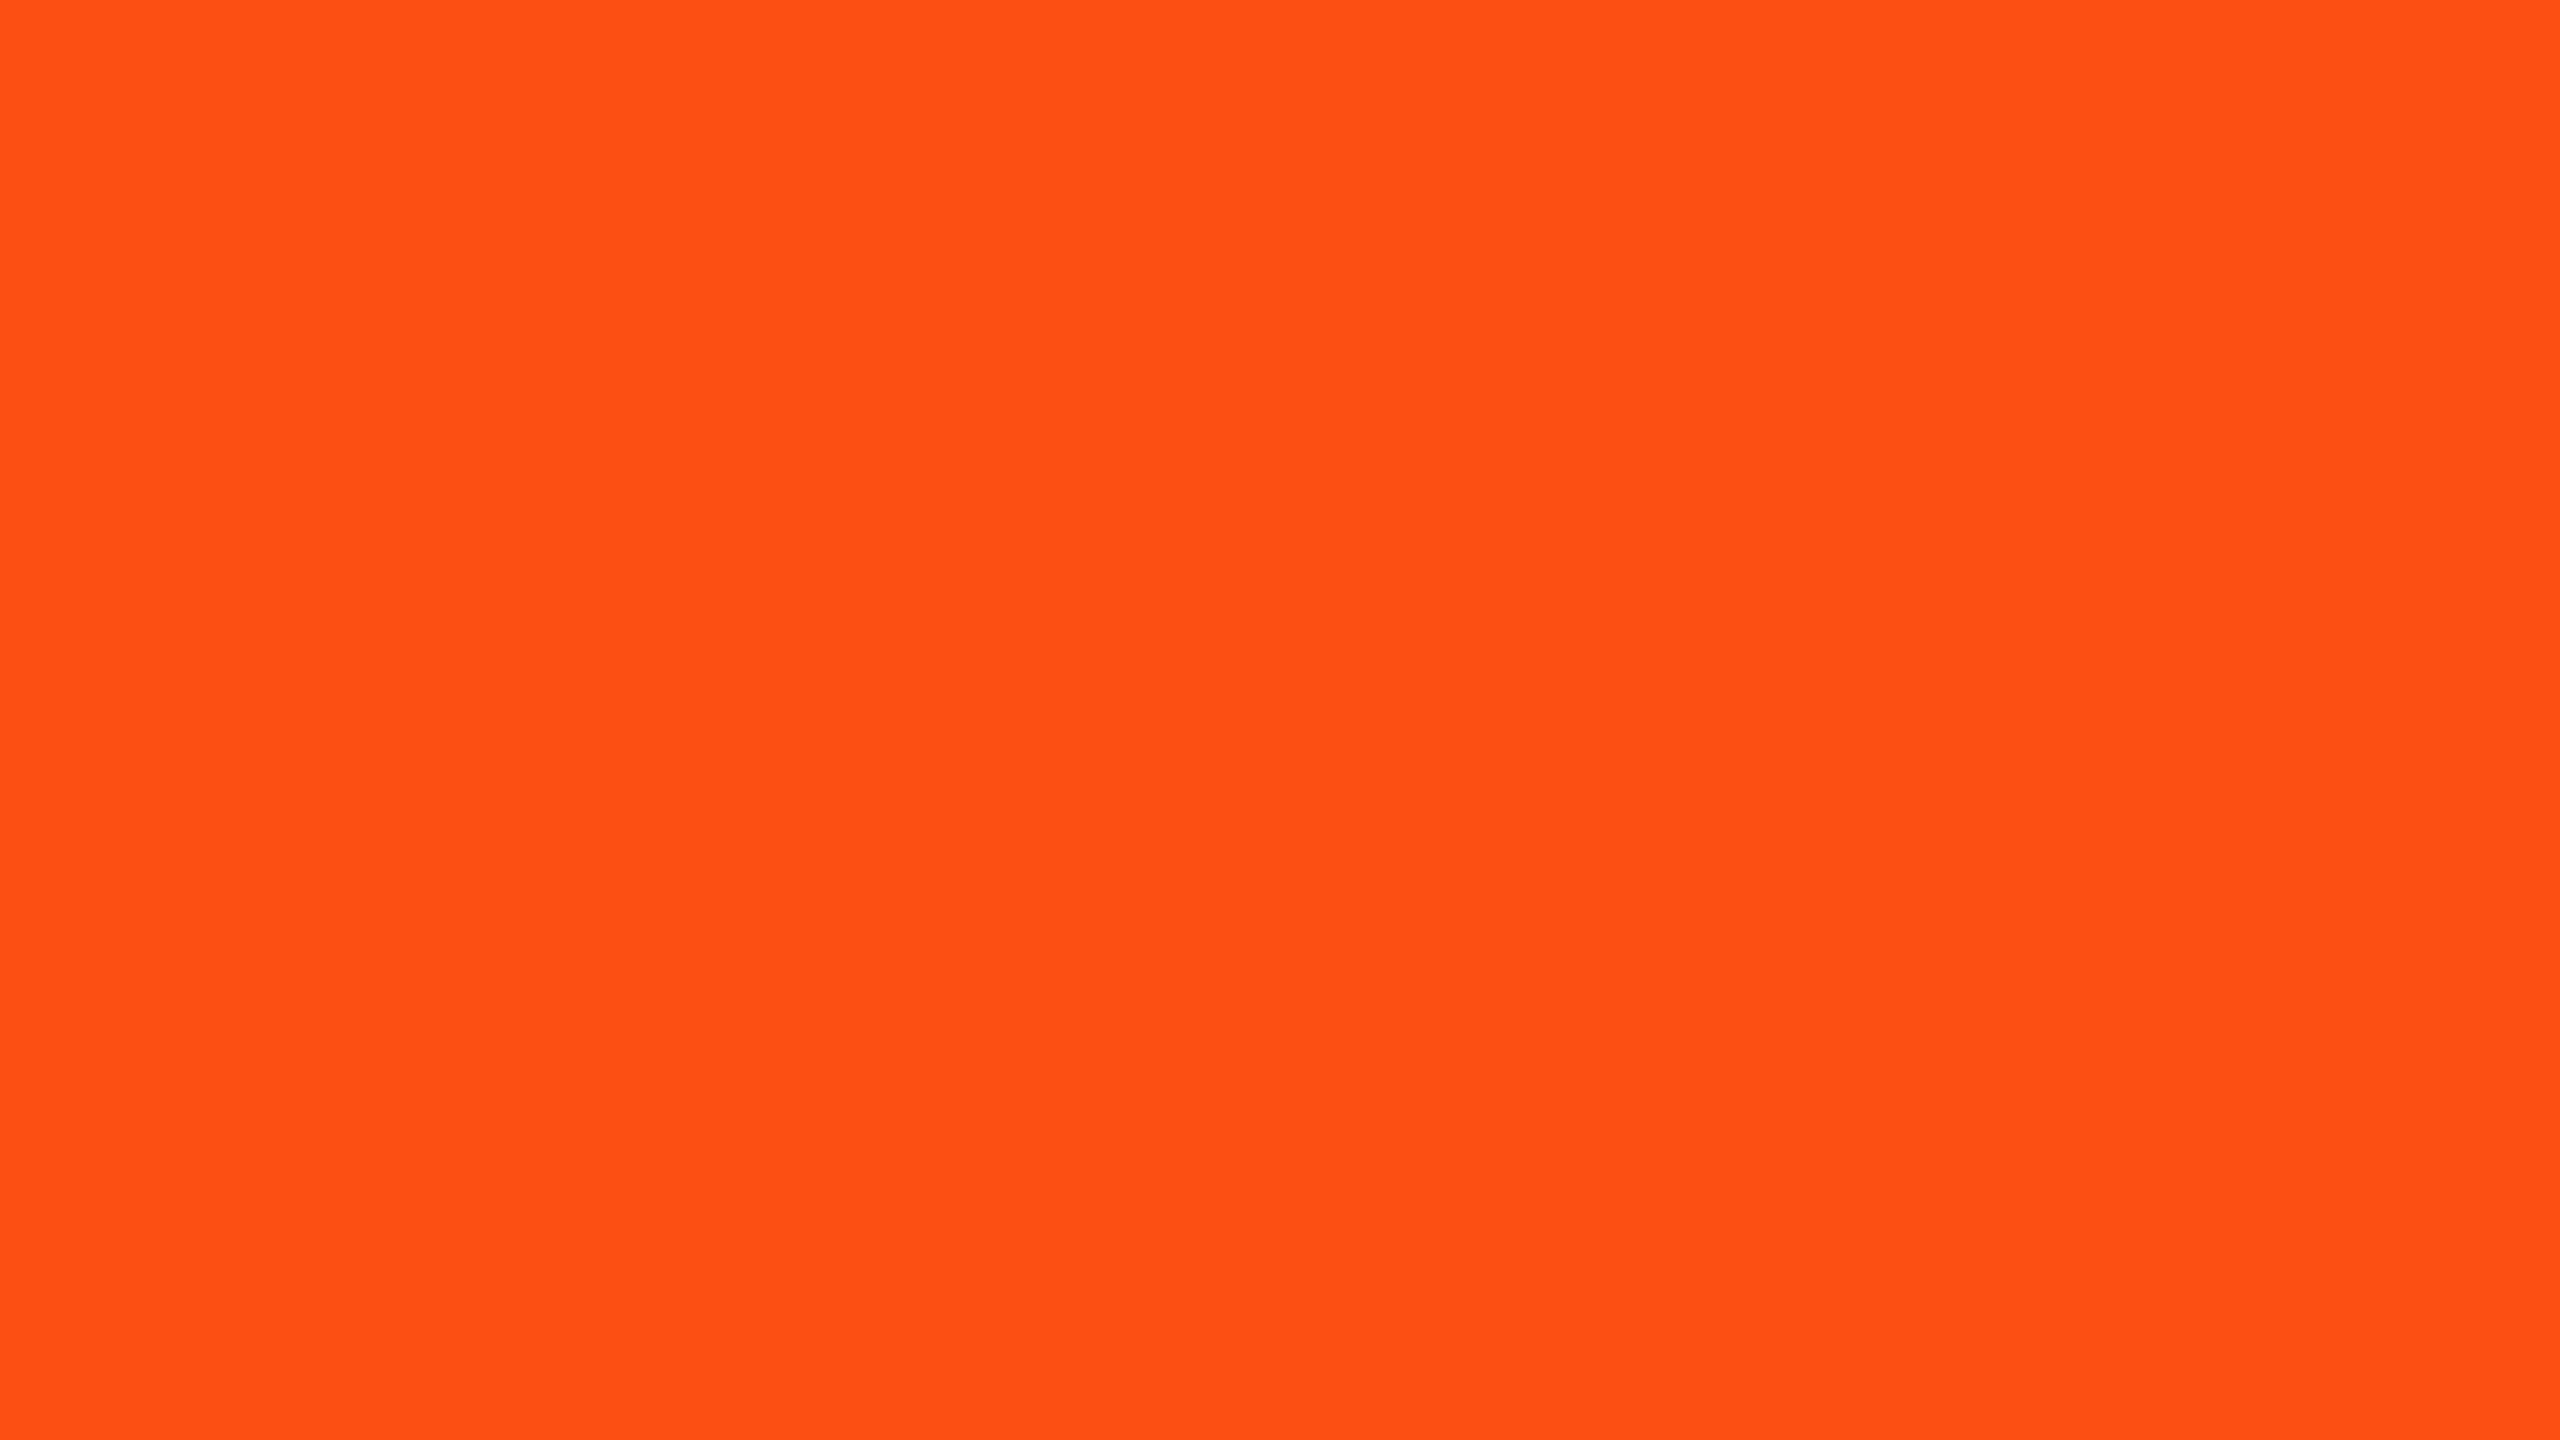 orange solid color wallpaper 49781 2560x1440 px